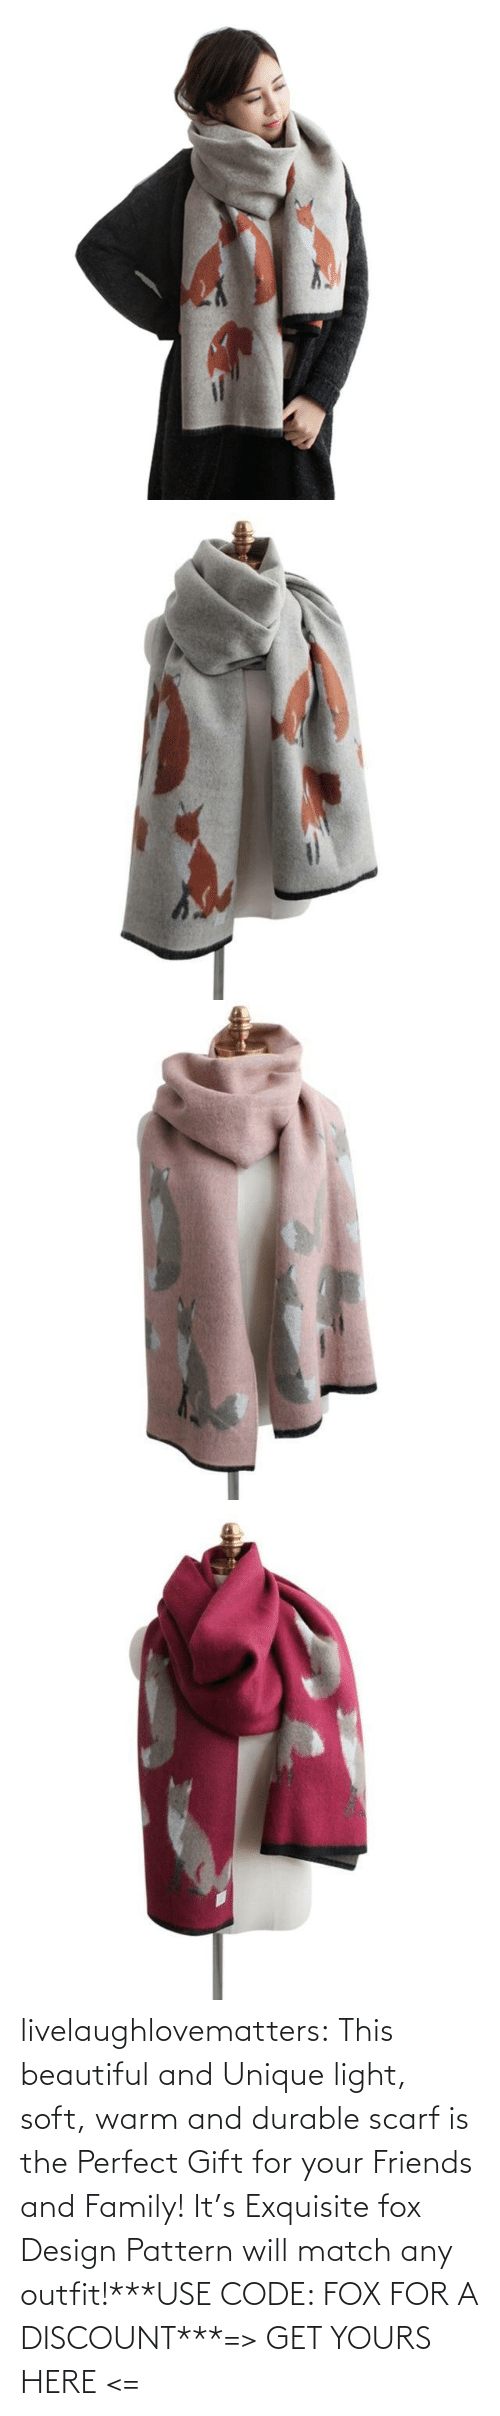 Friends And Family: livelaughlovematters:  This beautiful and Unique light, soft, warm and durable scarf is the Perfect Gift for your Friends and Family! It's Exquisite fox Design Pattern will match any outfit!***USE CODE: FOX FOR A DISCOUNT***=> GET YOURS HERE <=